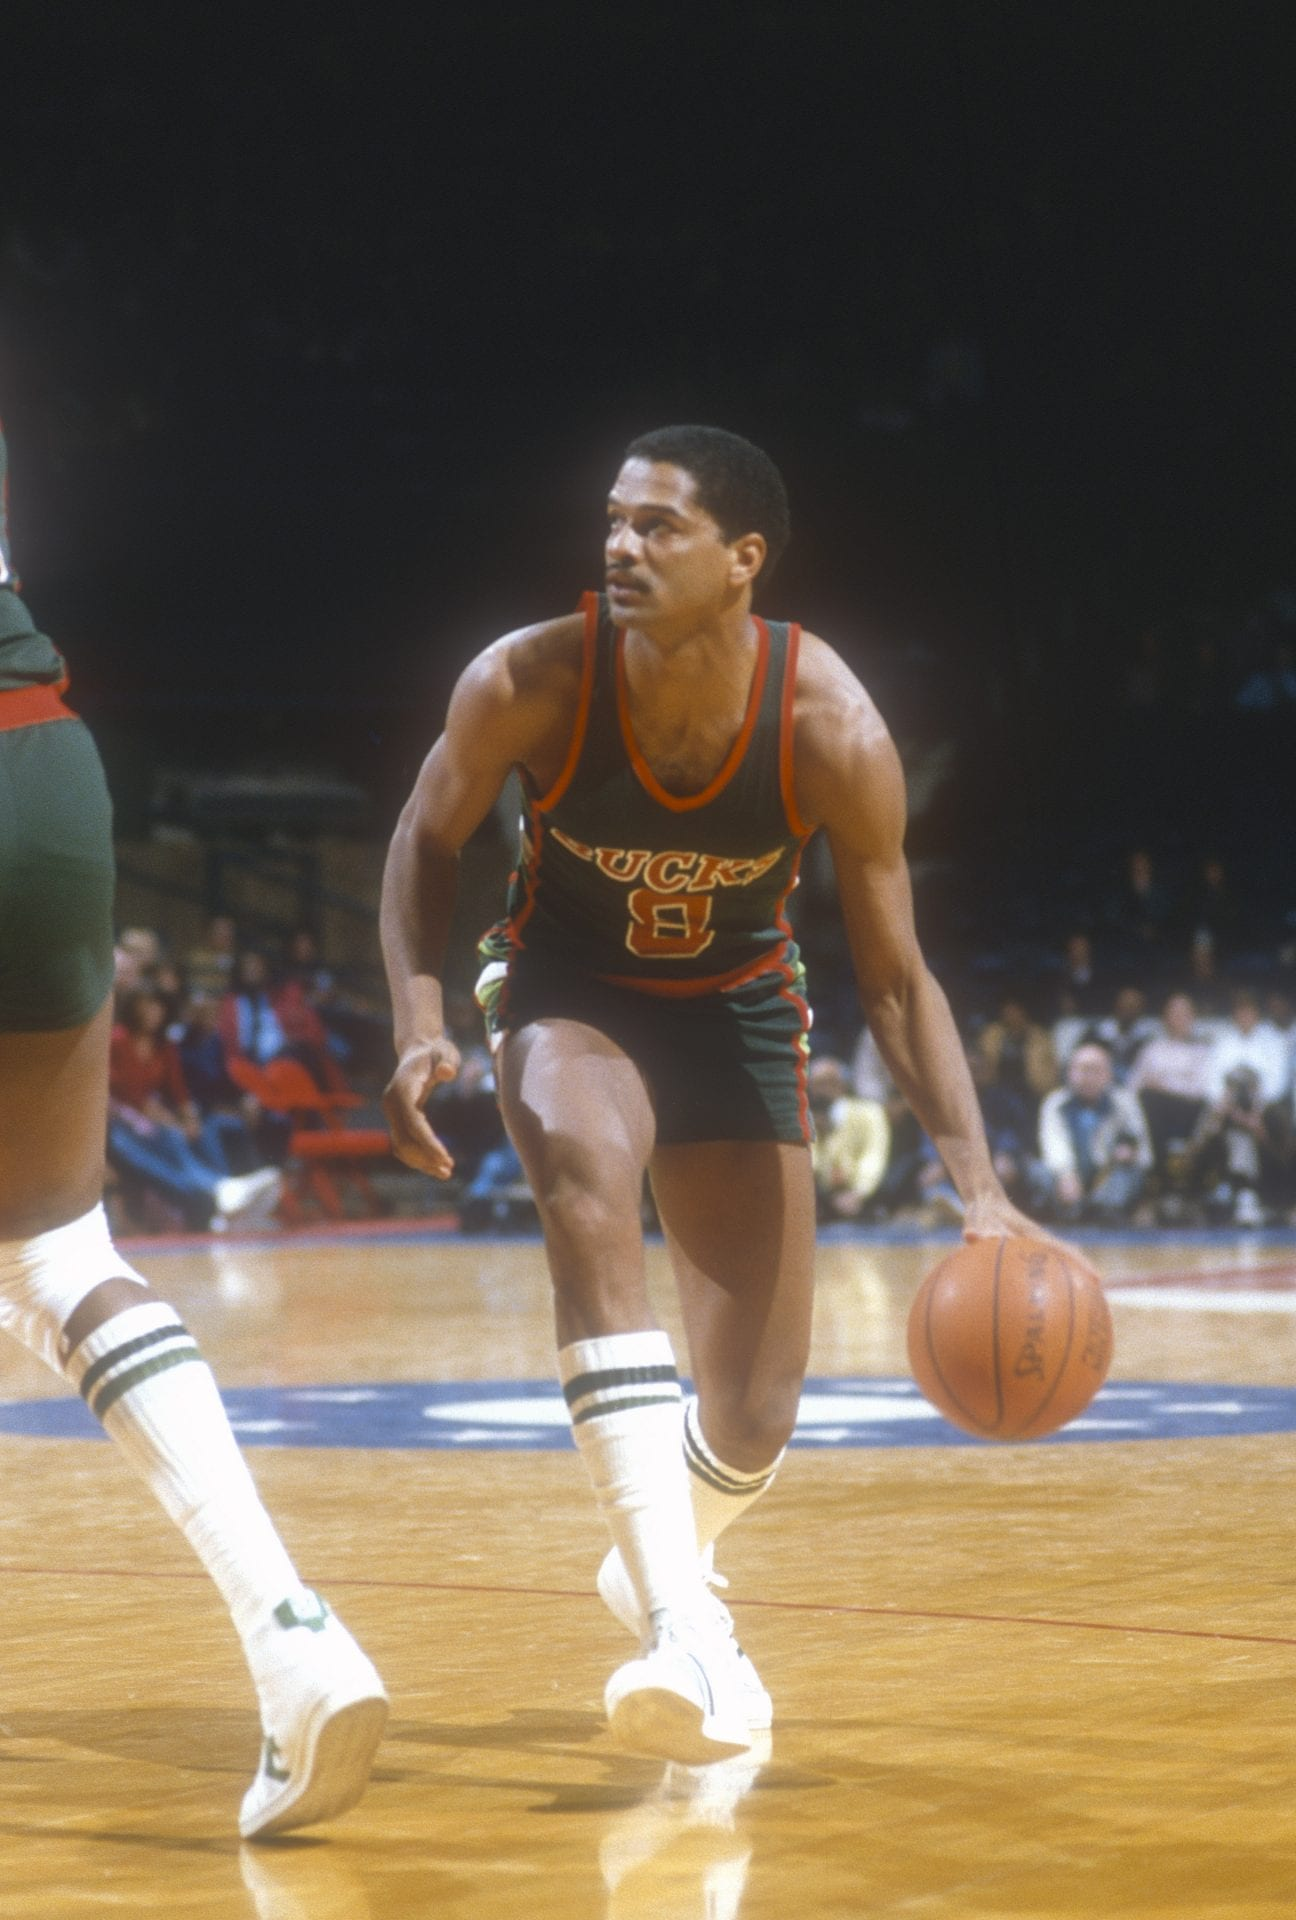 Marques Johnson #8 of the Milwaukee Bucks dribbles the ball against the Washington Bullets during an NBA basketball game circa 1983 at the Capital Centre in Landover, Maryland. Johnson played for the Bucks from 1977-85